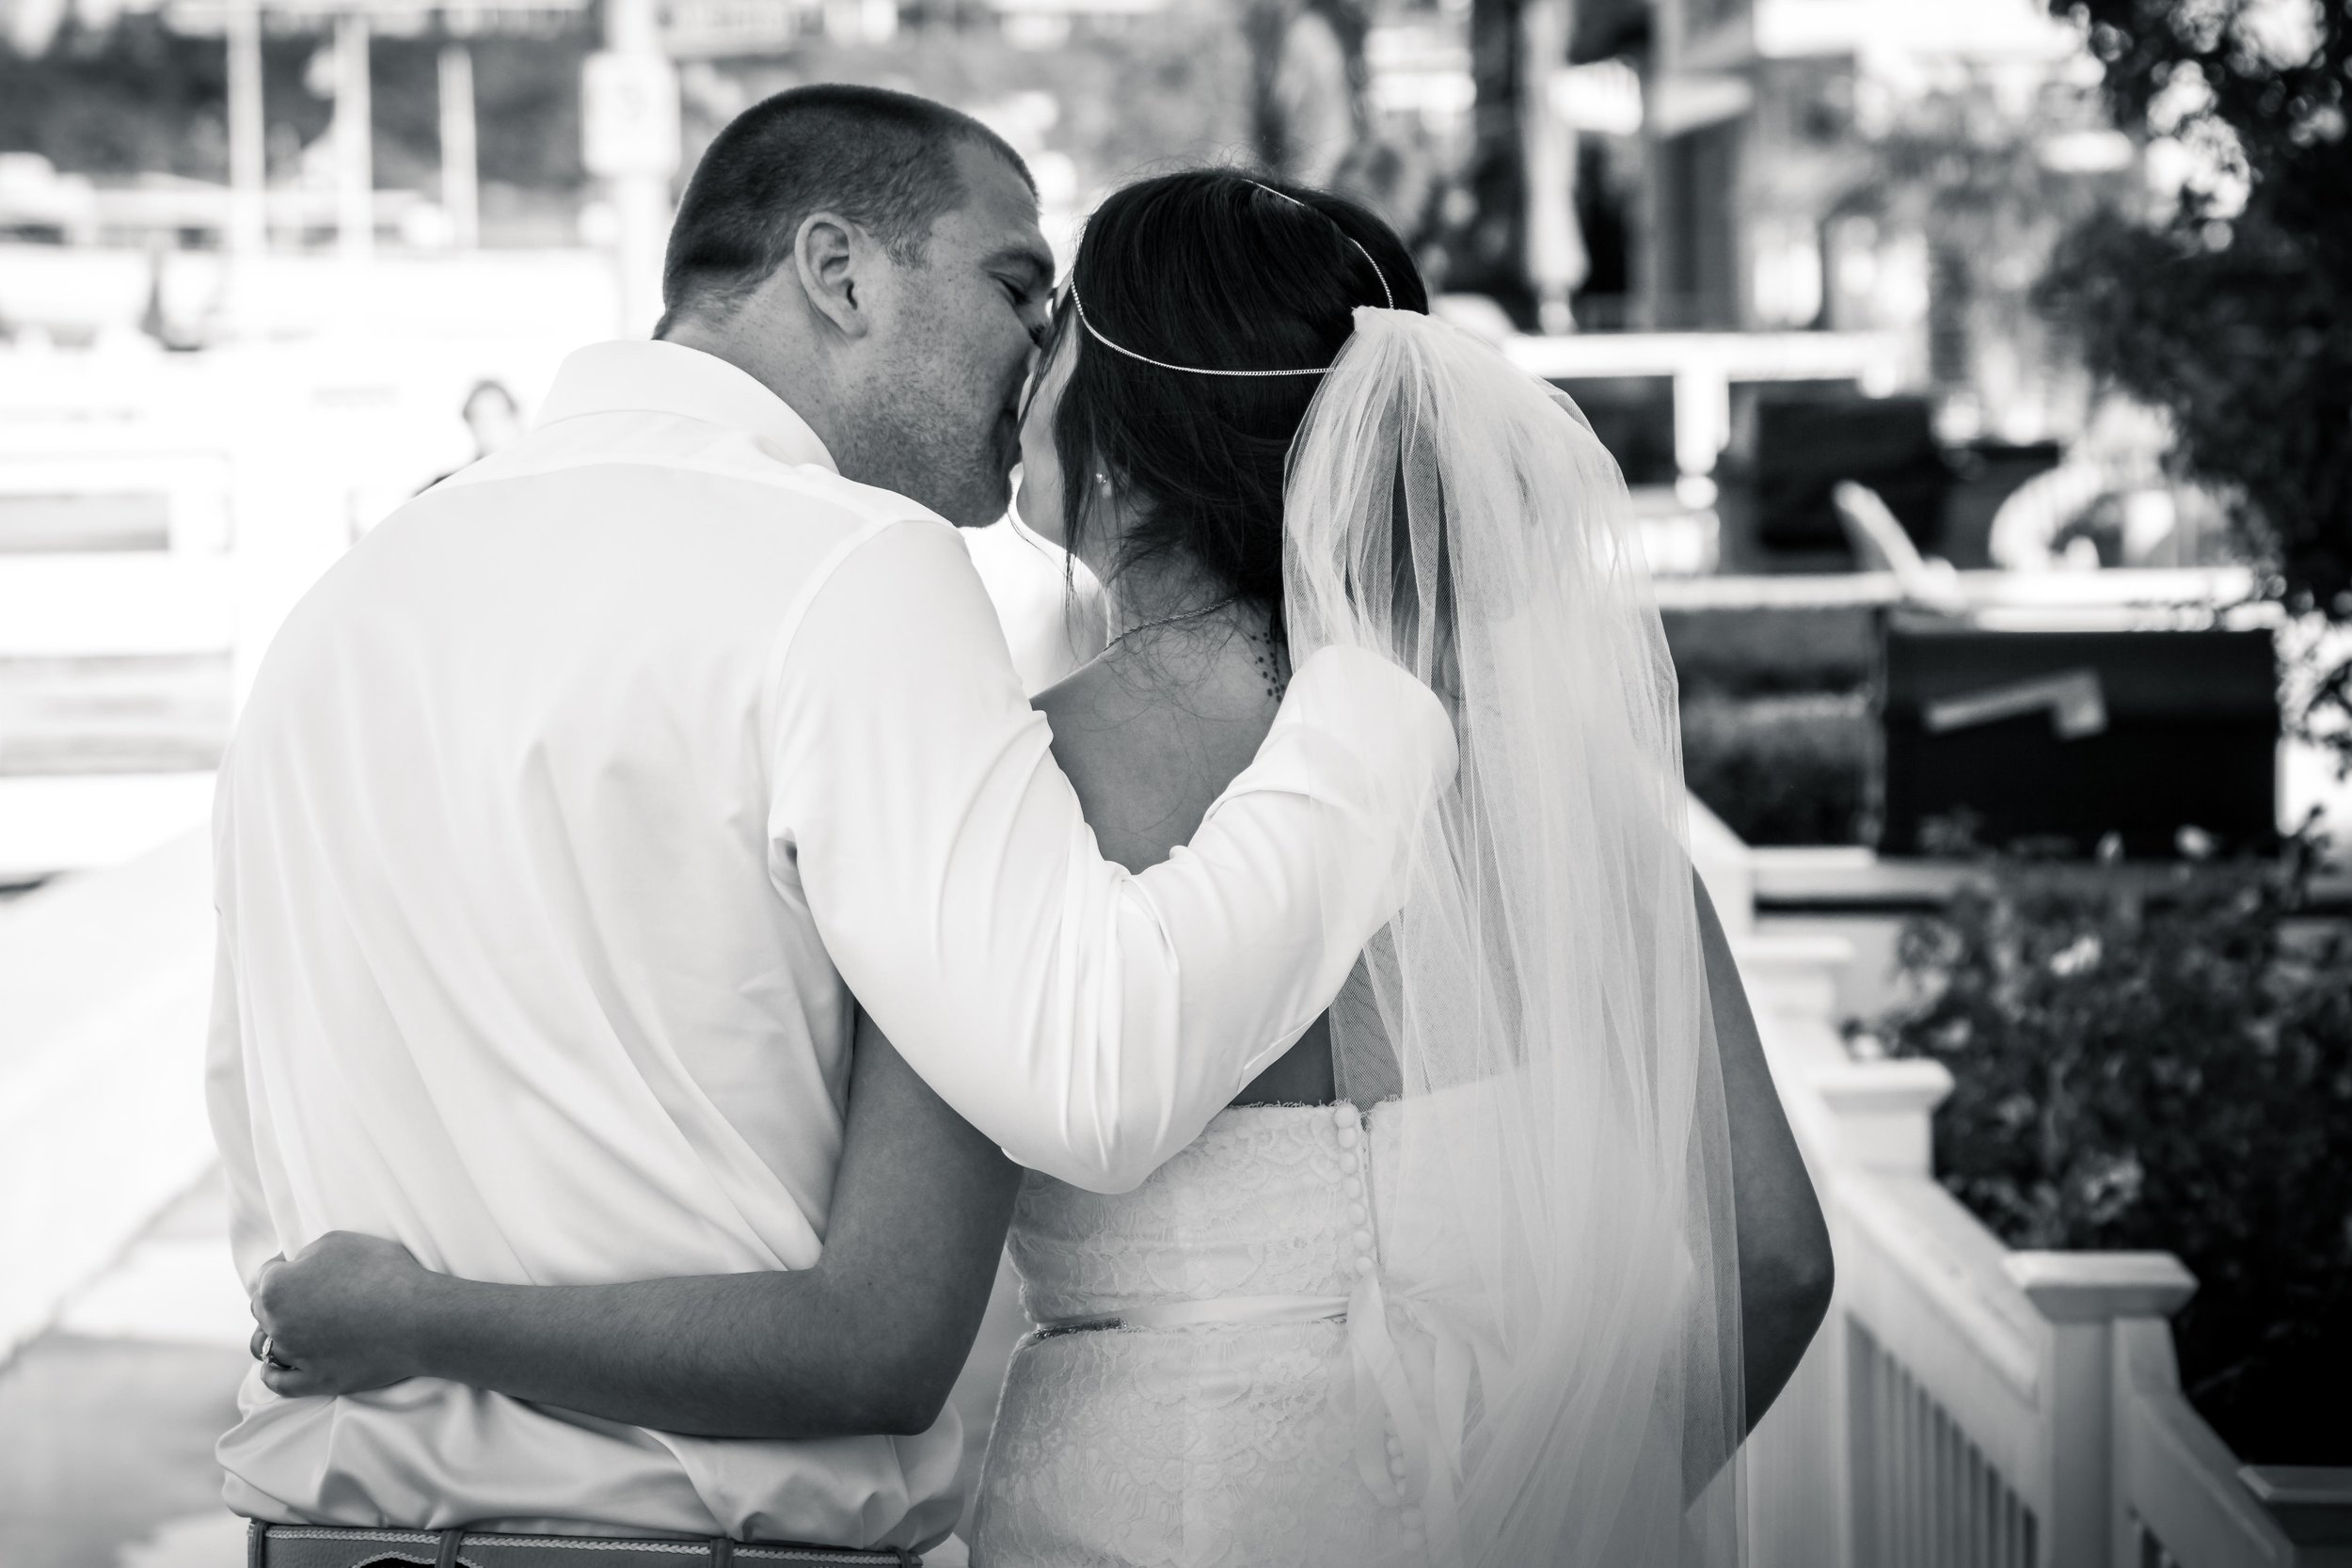 Black-and-white candid photo of the bride and groom kissing and walking together